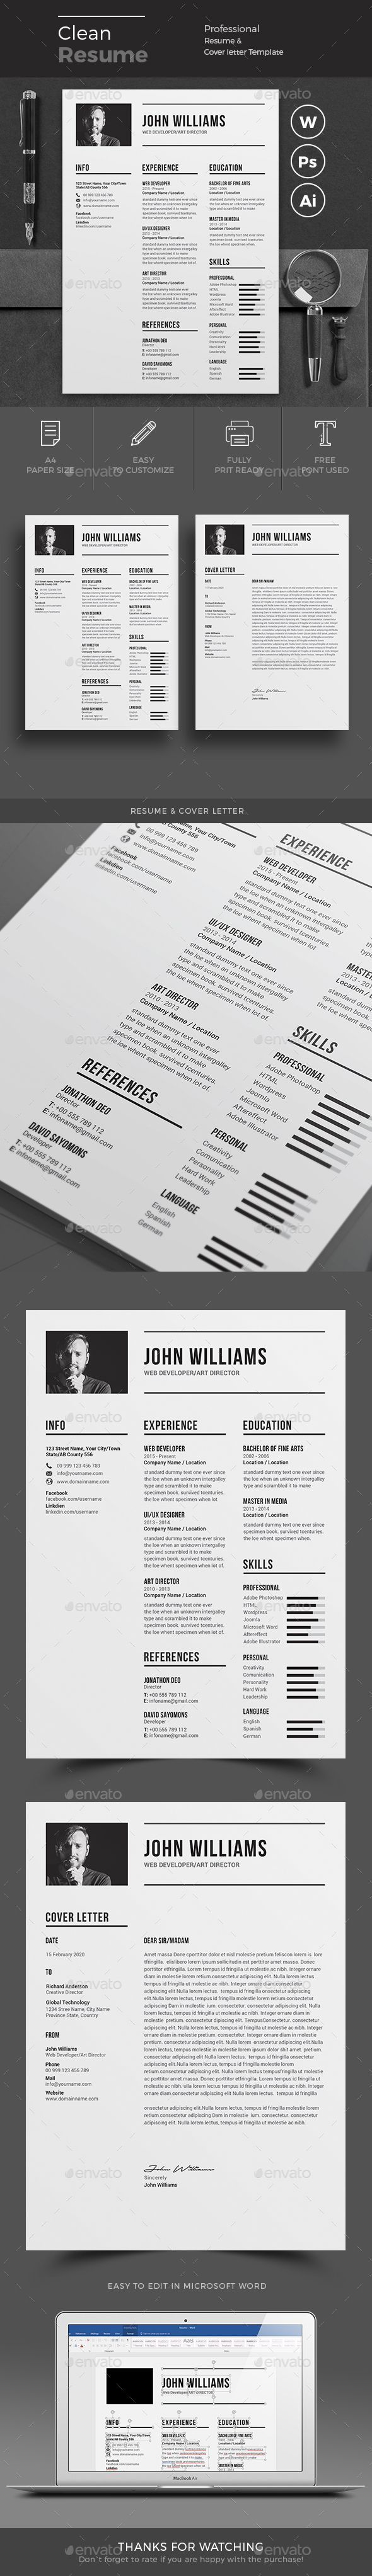 office administrator cover letter%0A Cover Sheet Resume Template